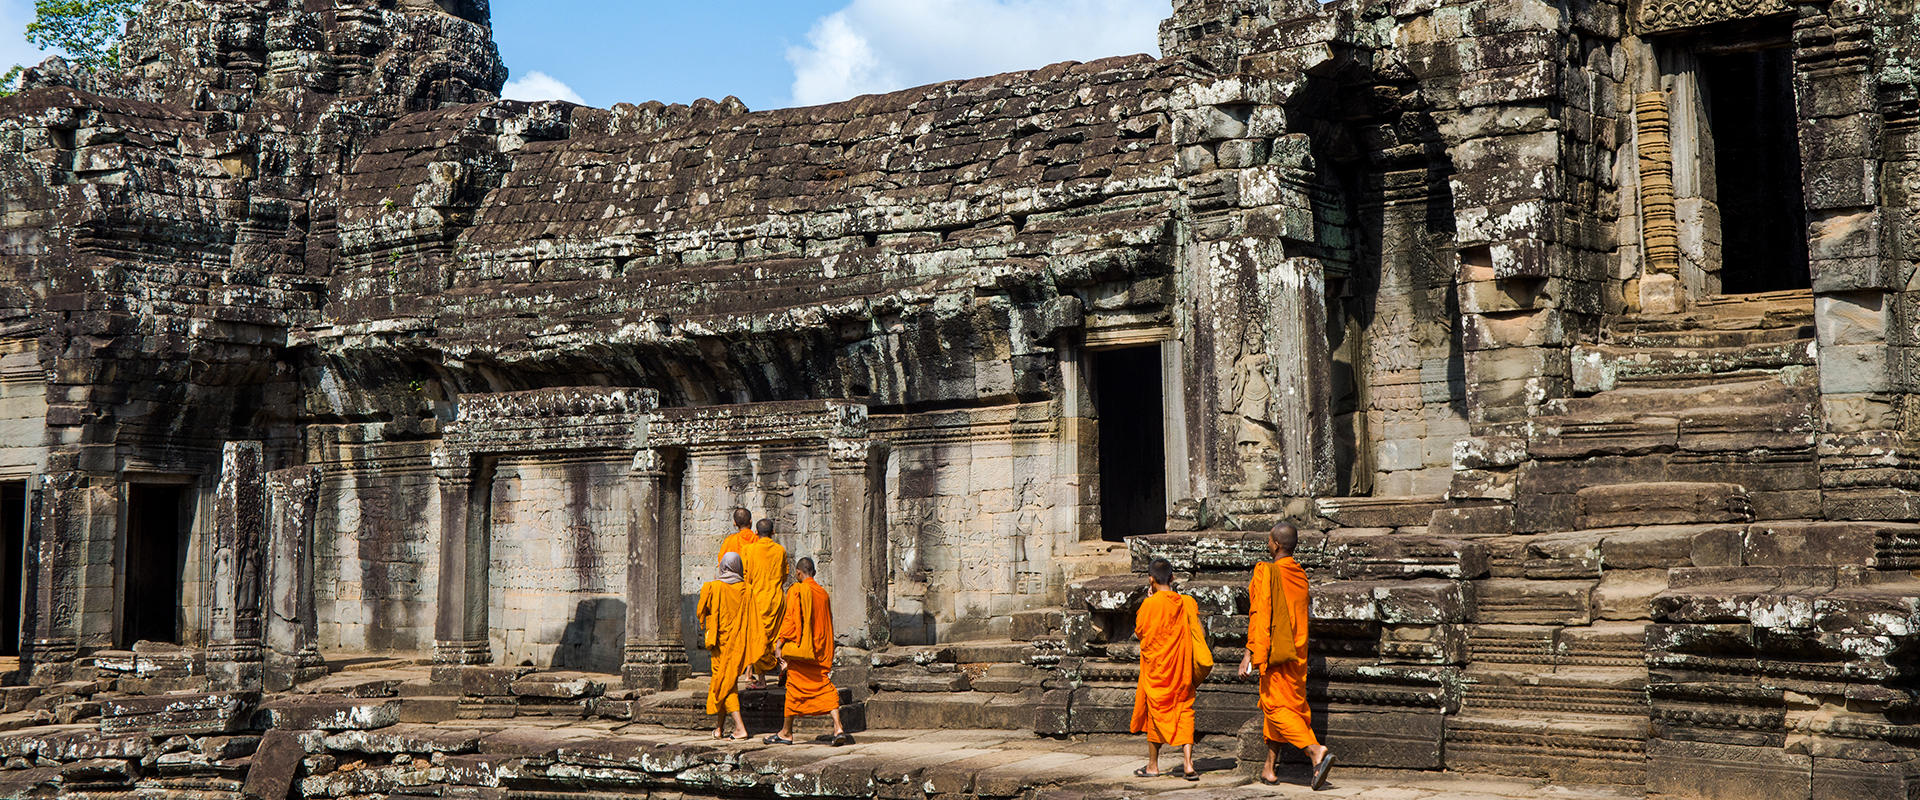 The Grantourismo Travel Guide to Siem Reap, Cambodia. Copyright © 2017 Terence Carter / Grantourismo. All Rights Reserved.